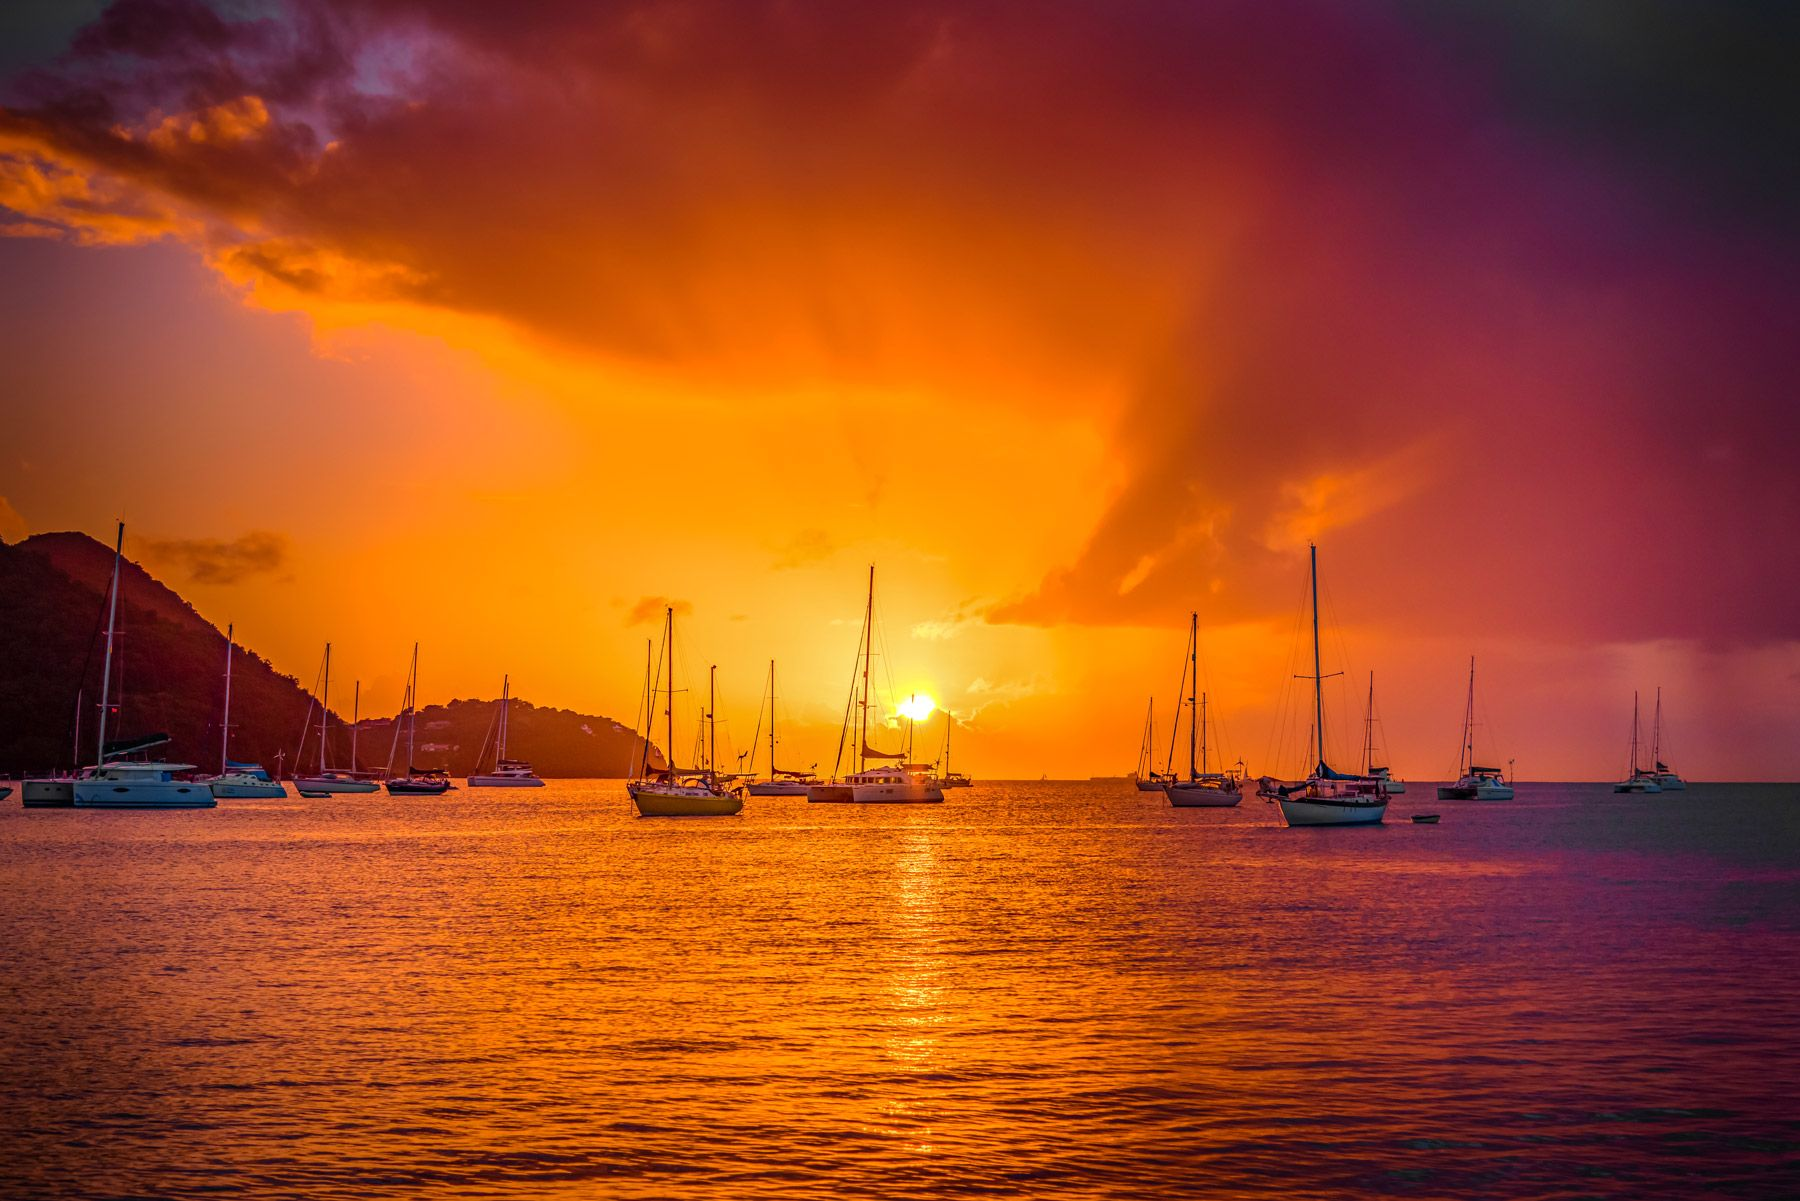 Sunset at Rodney Bay Saint Lucia